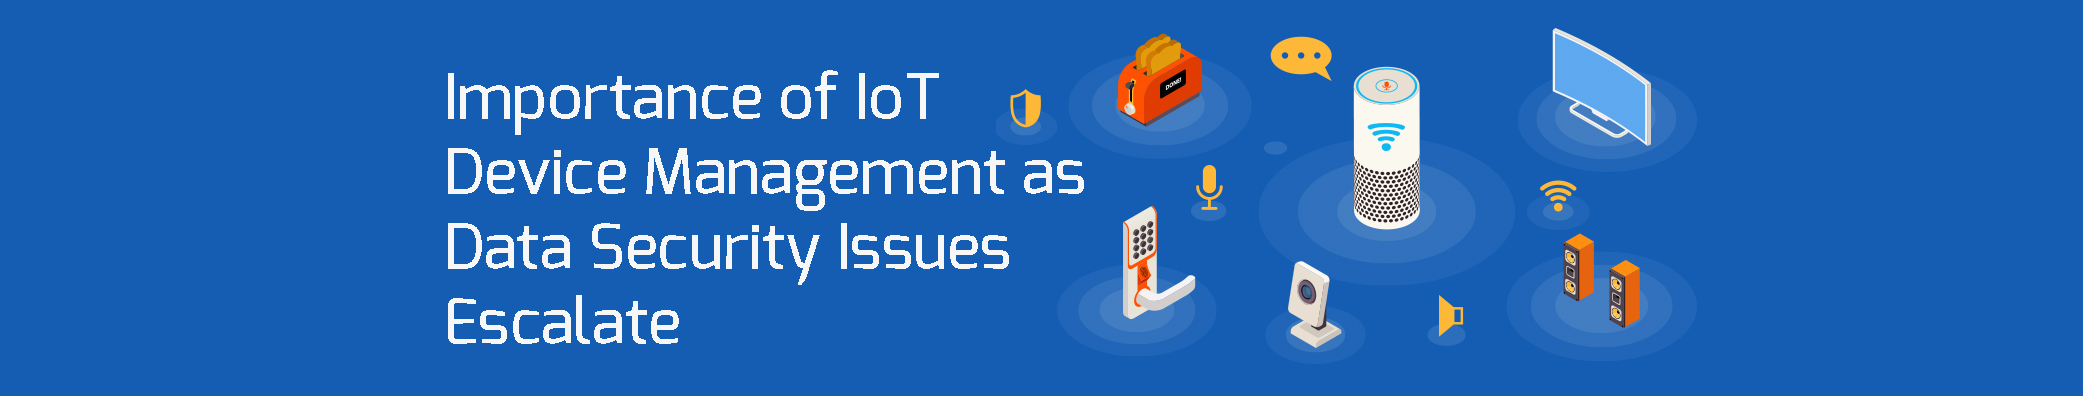 Importance of IoT Device Management as Data Security Issues Escalate